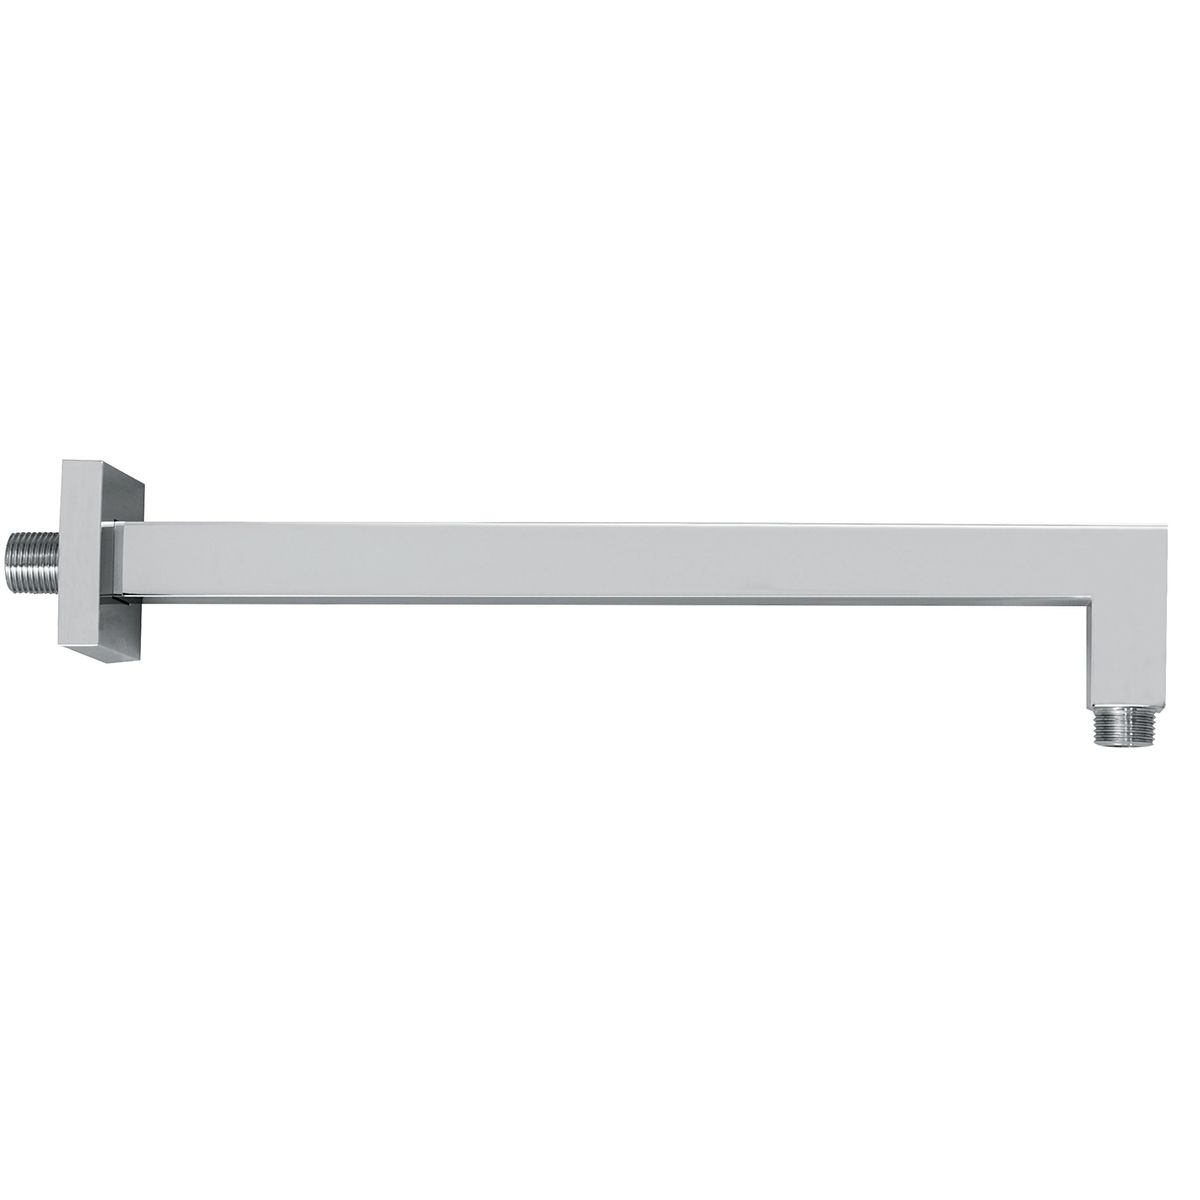 Bathrooms To Love Vema Chrome Square Wall Mounted Shower Arm 400mm